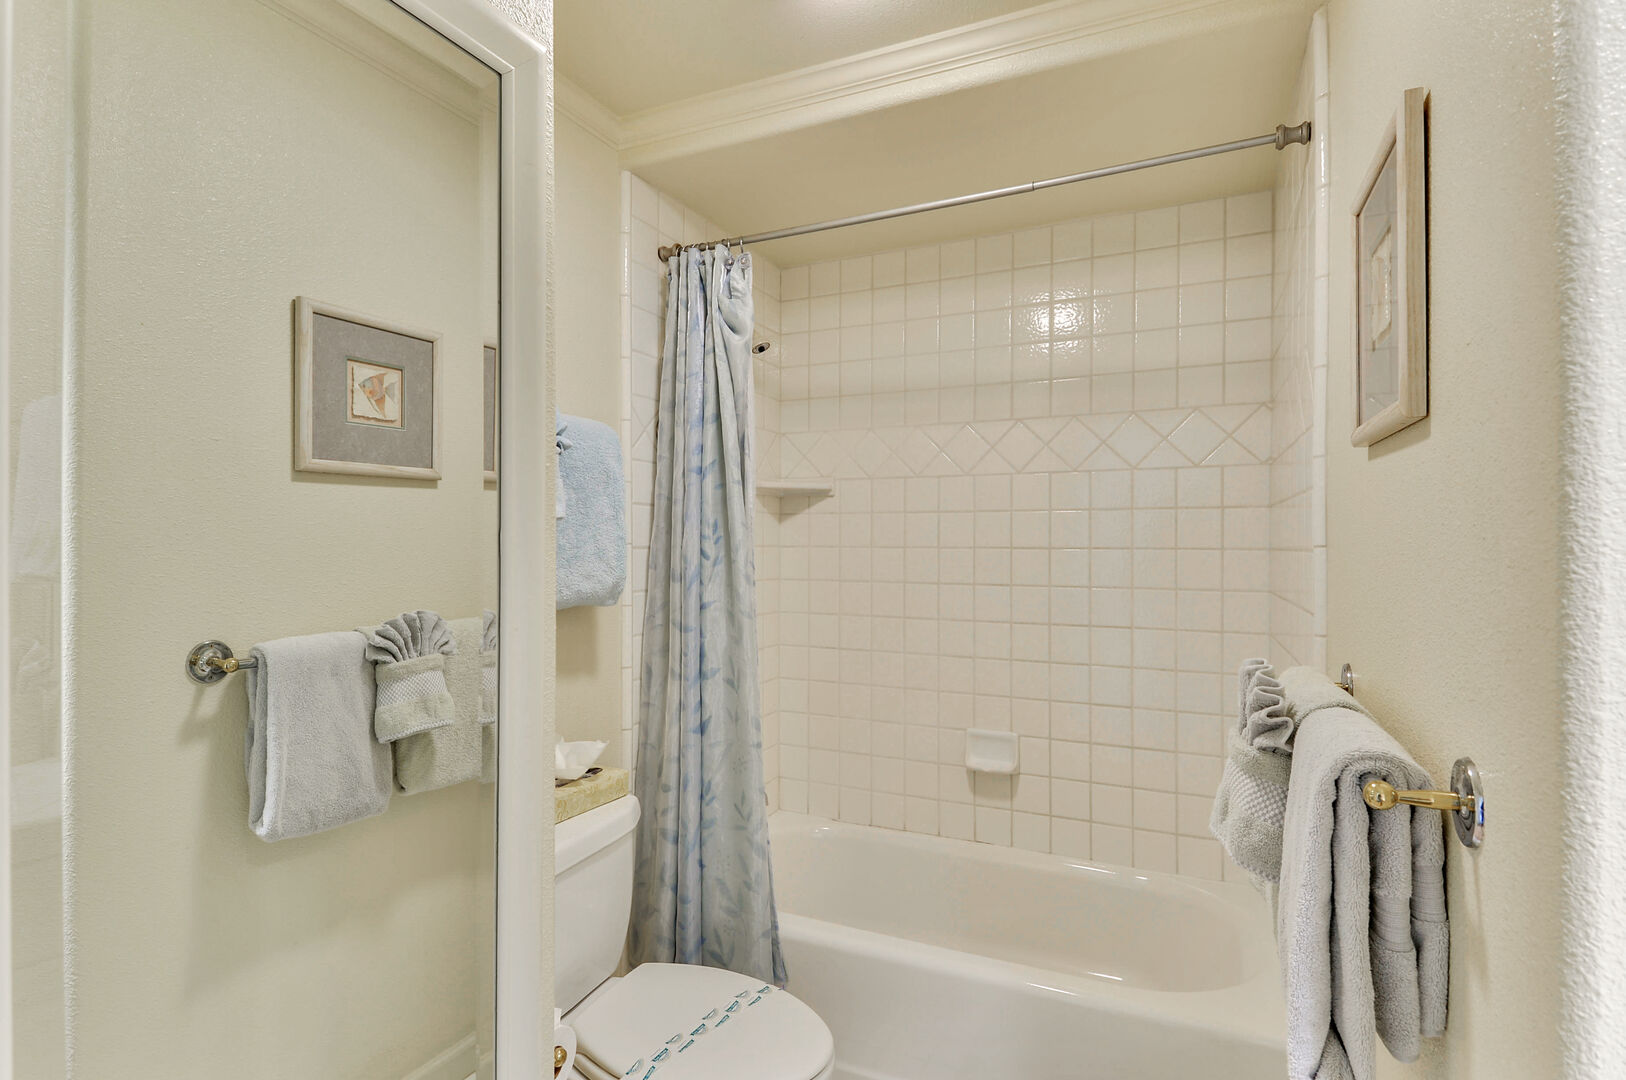 Tub and Shower Unit, Toilet, and Mirror Sliding Door.